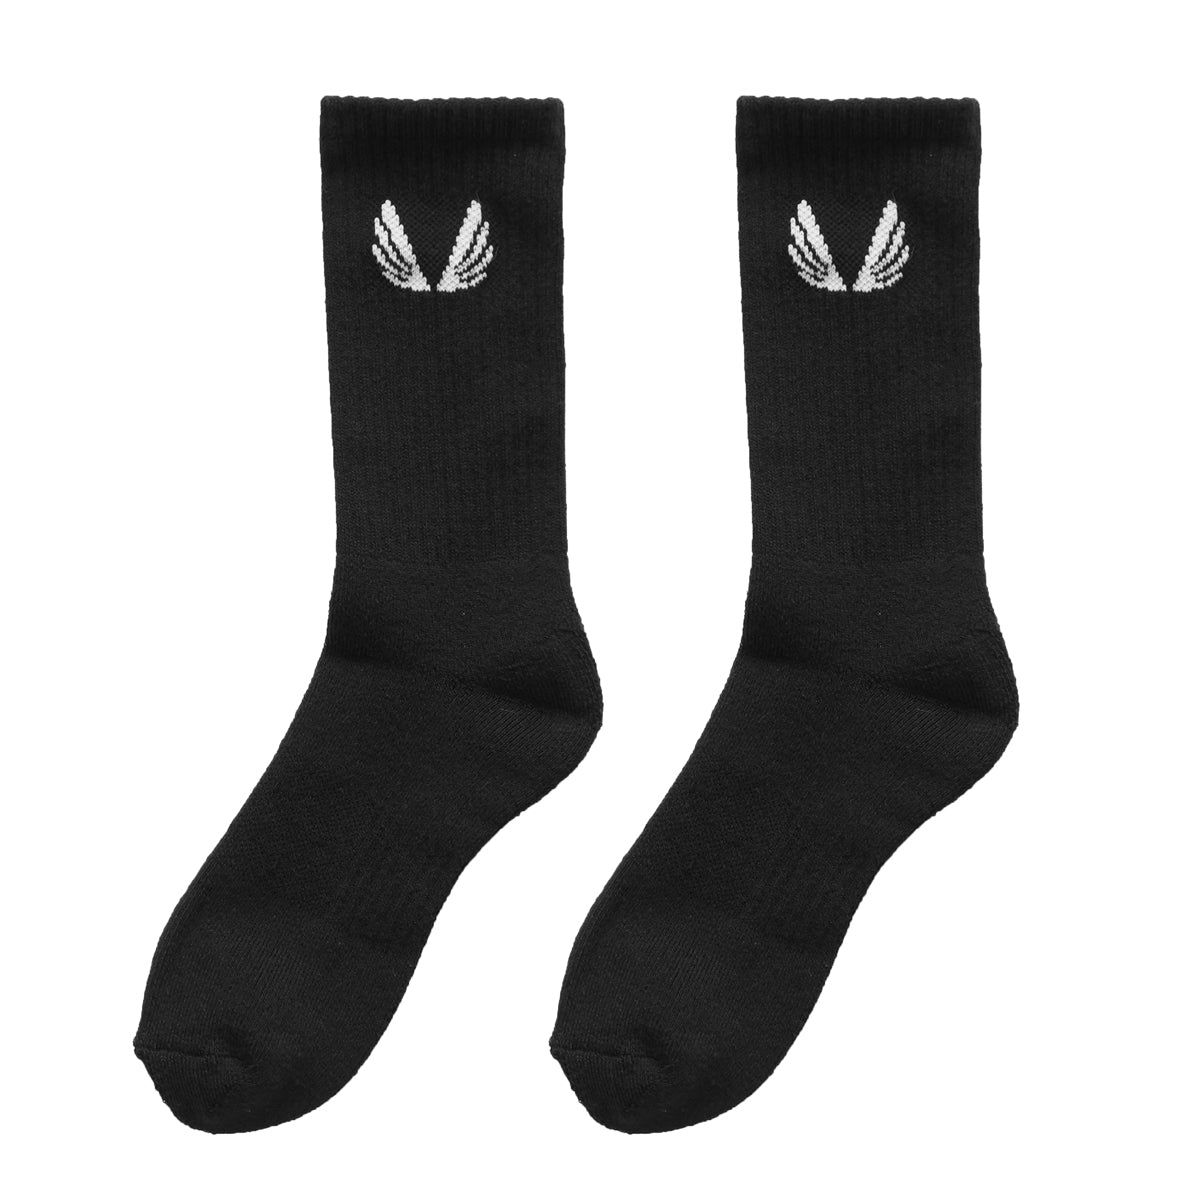 Essential Crew Socks (3 Pair) - Black